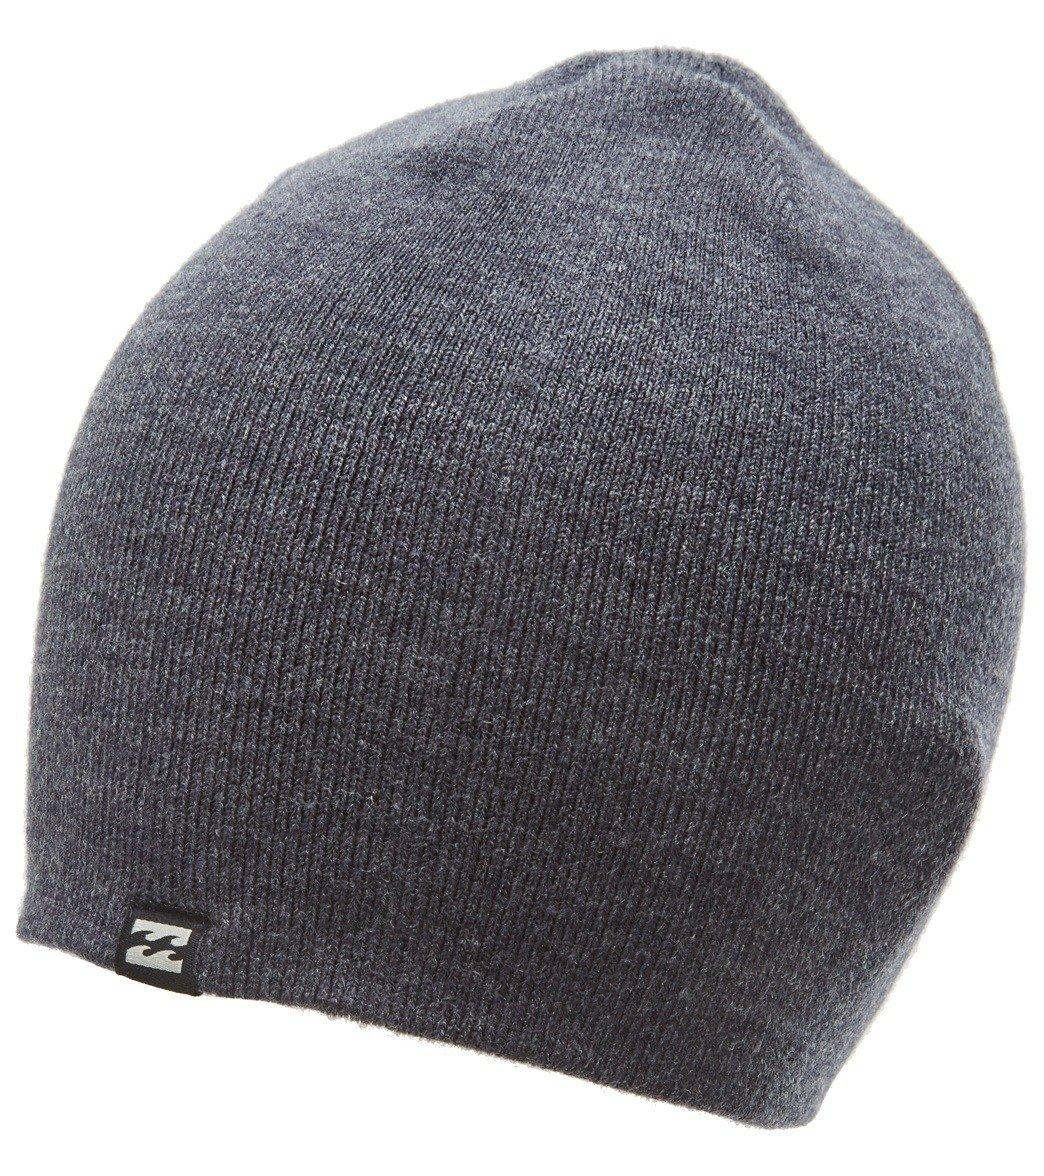 c72085e2e7a Billabong All Day Beanie at SwimOutlet.com